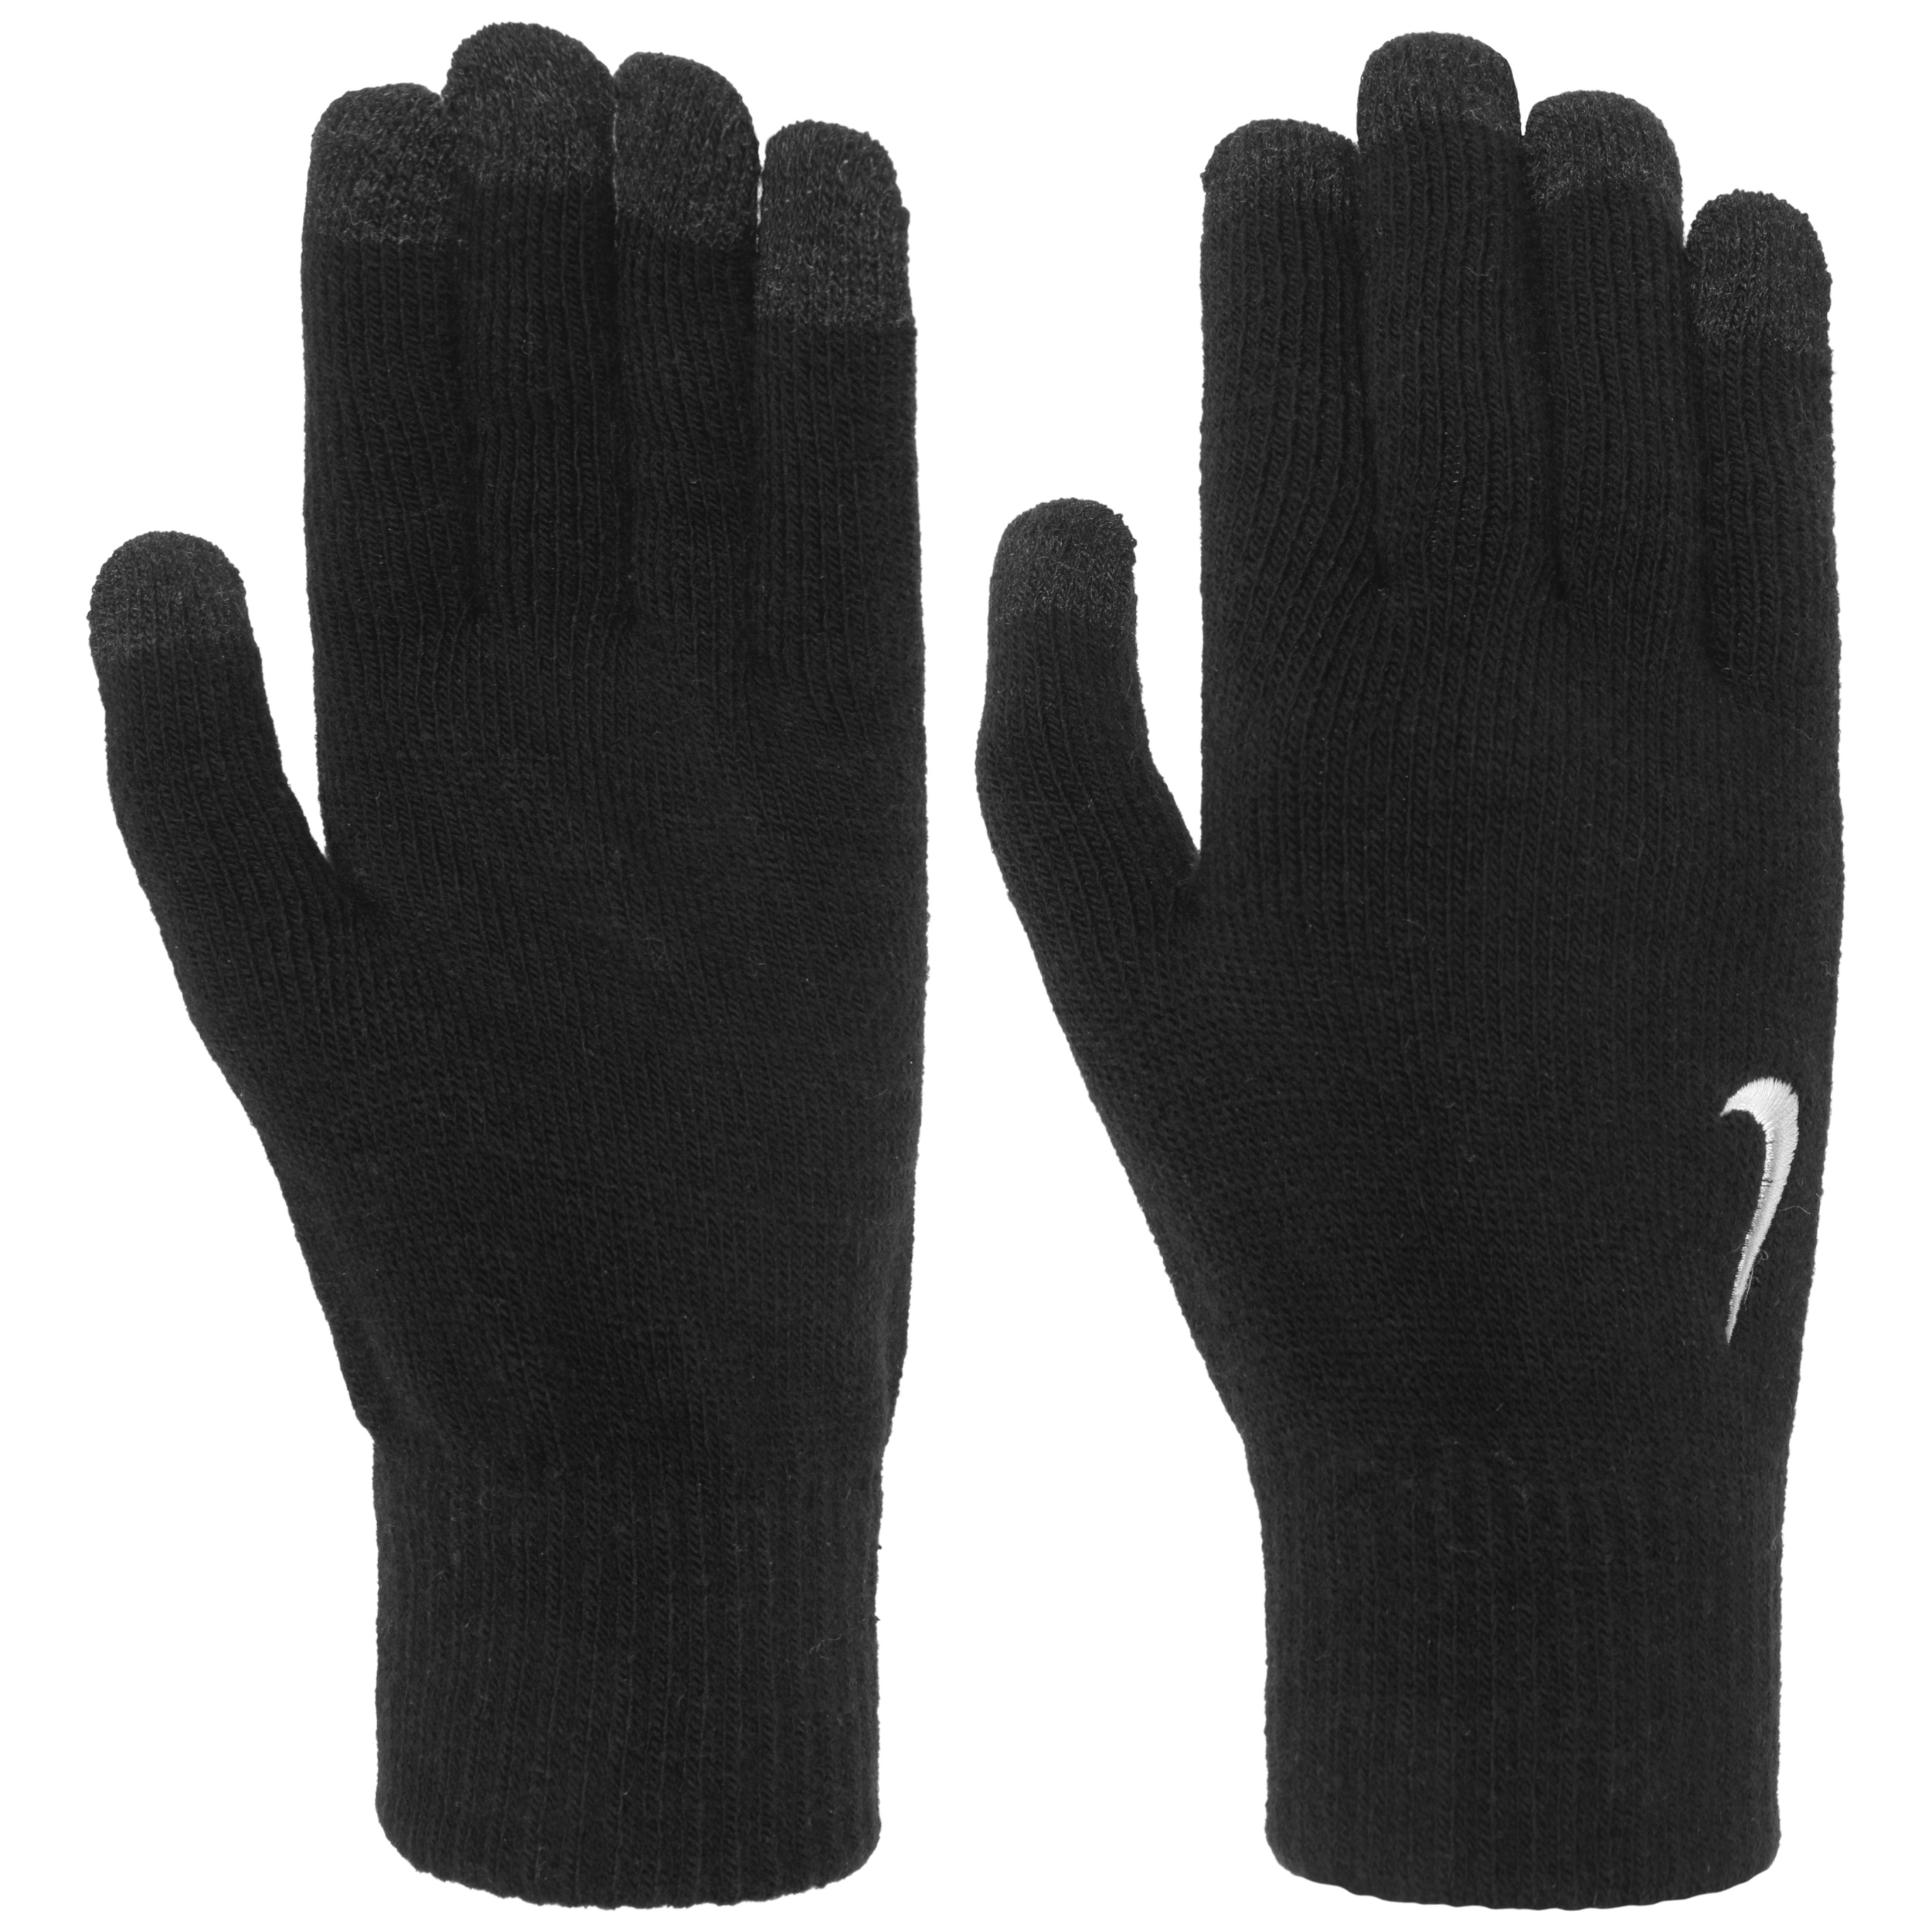 huge selection of 02f11 ccc86 ... Knitted Tech Gloves Handschuhe by Nike - schwarz 2